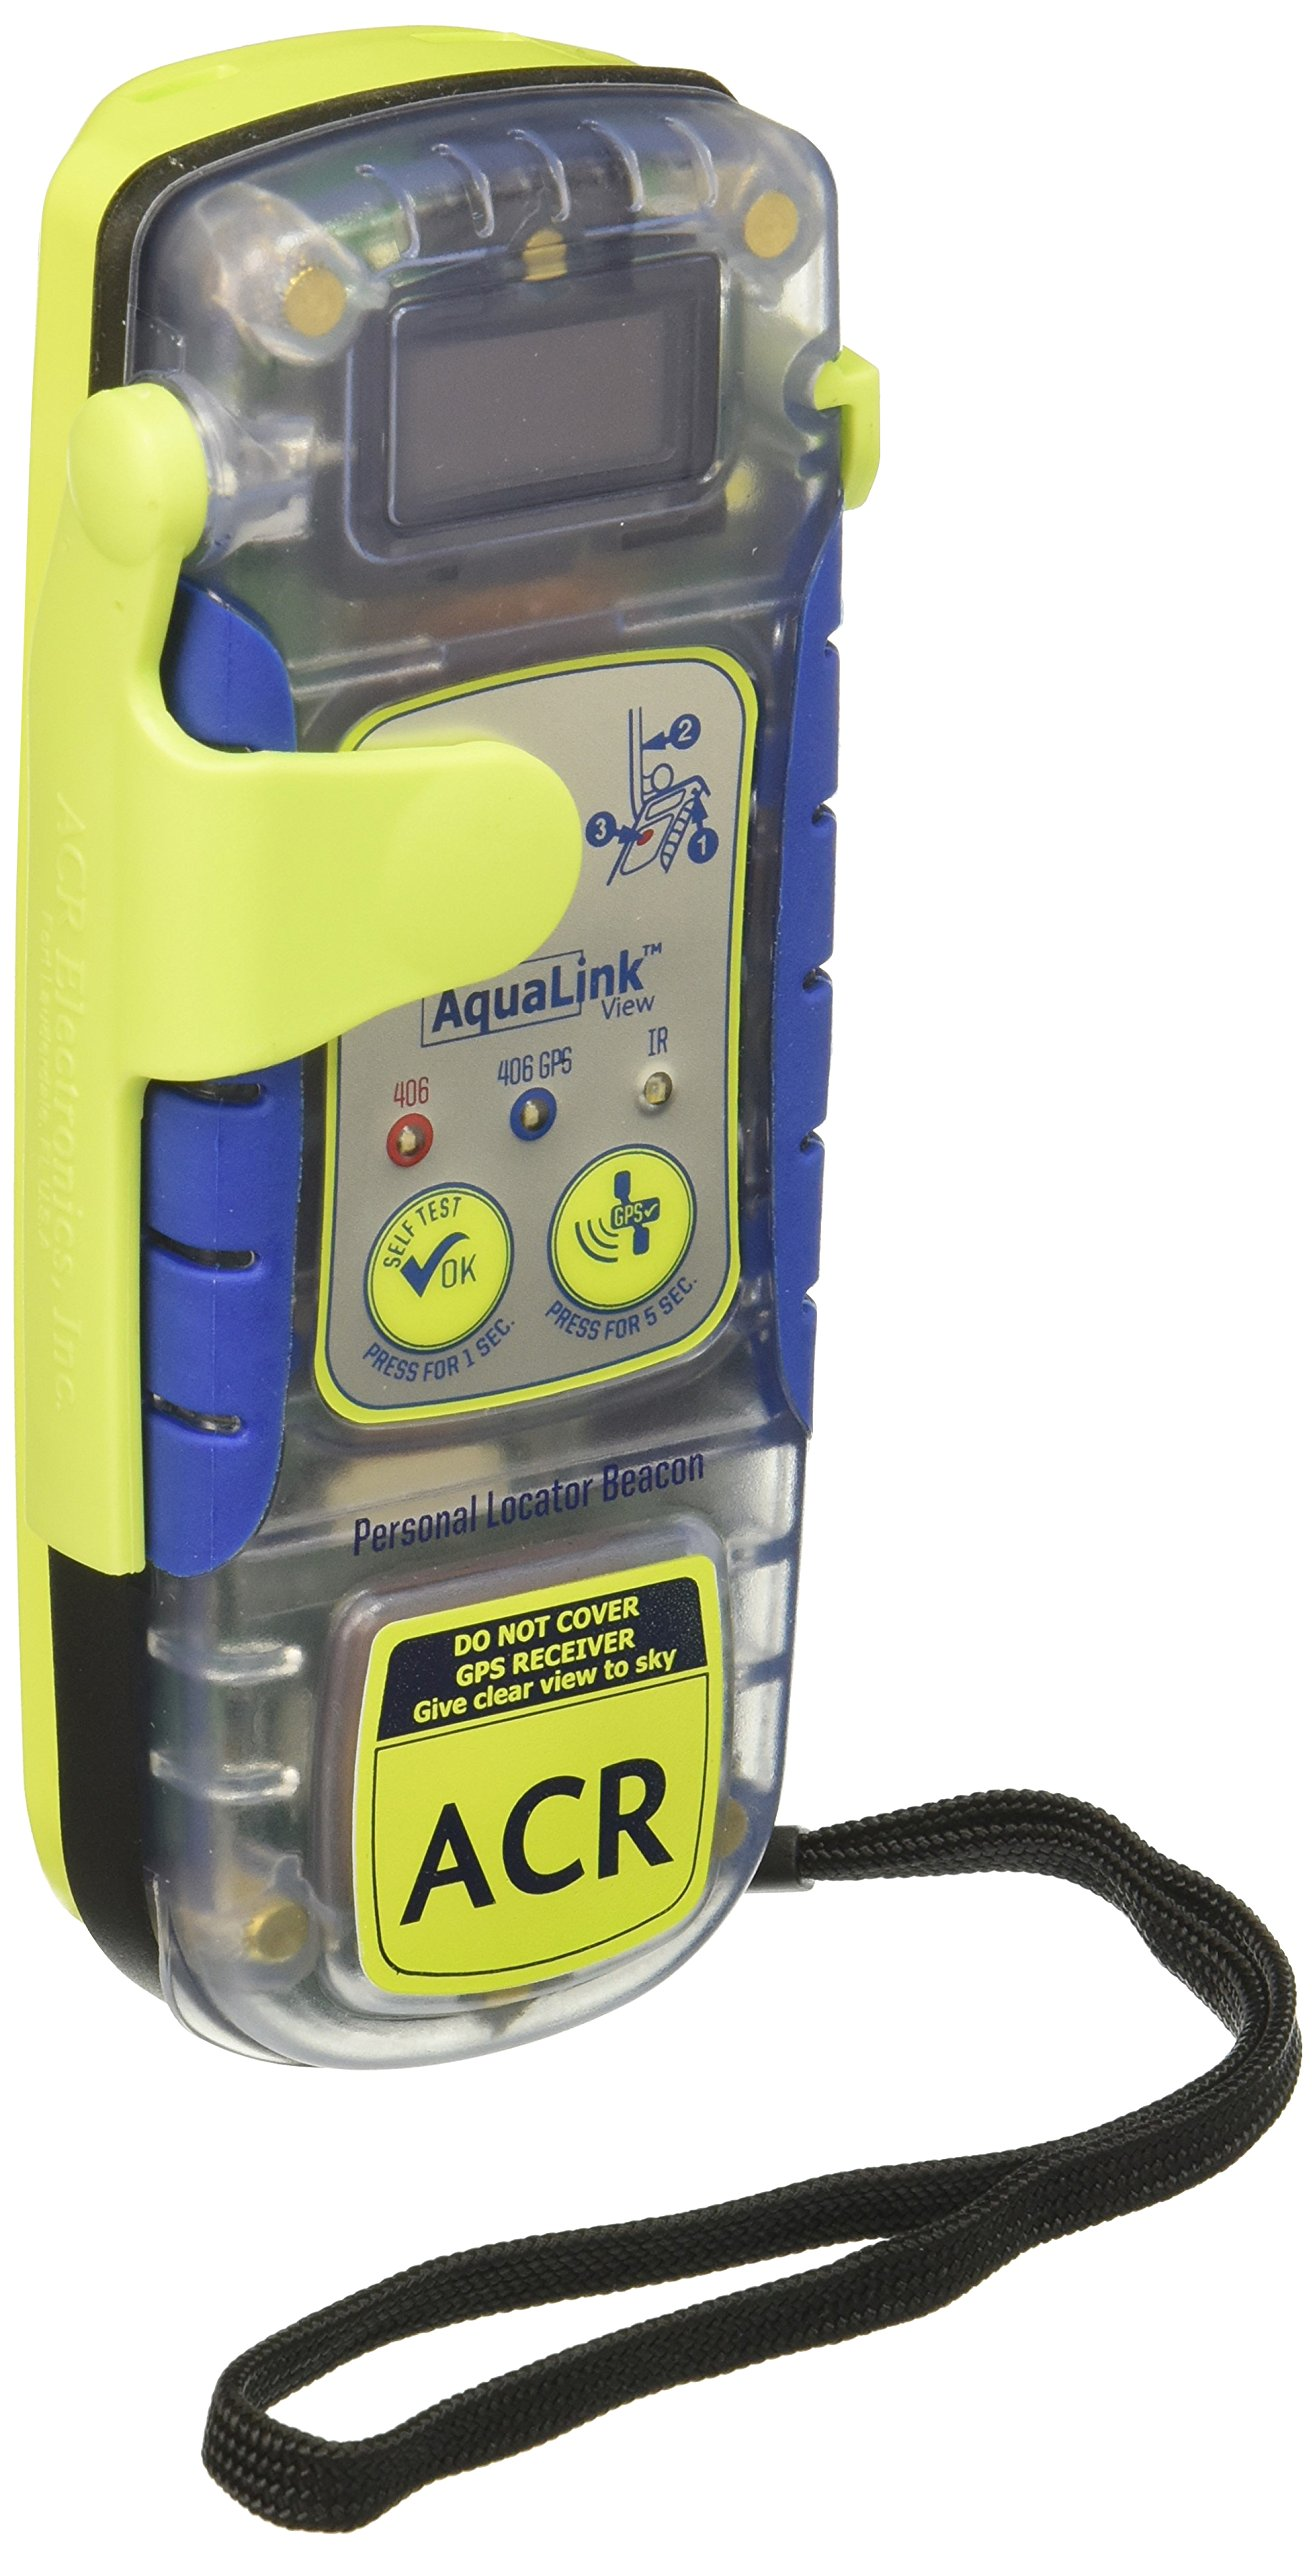 ACR Aqualink View PLB - Programmed for US Registration by acr